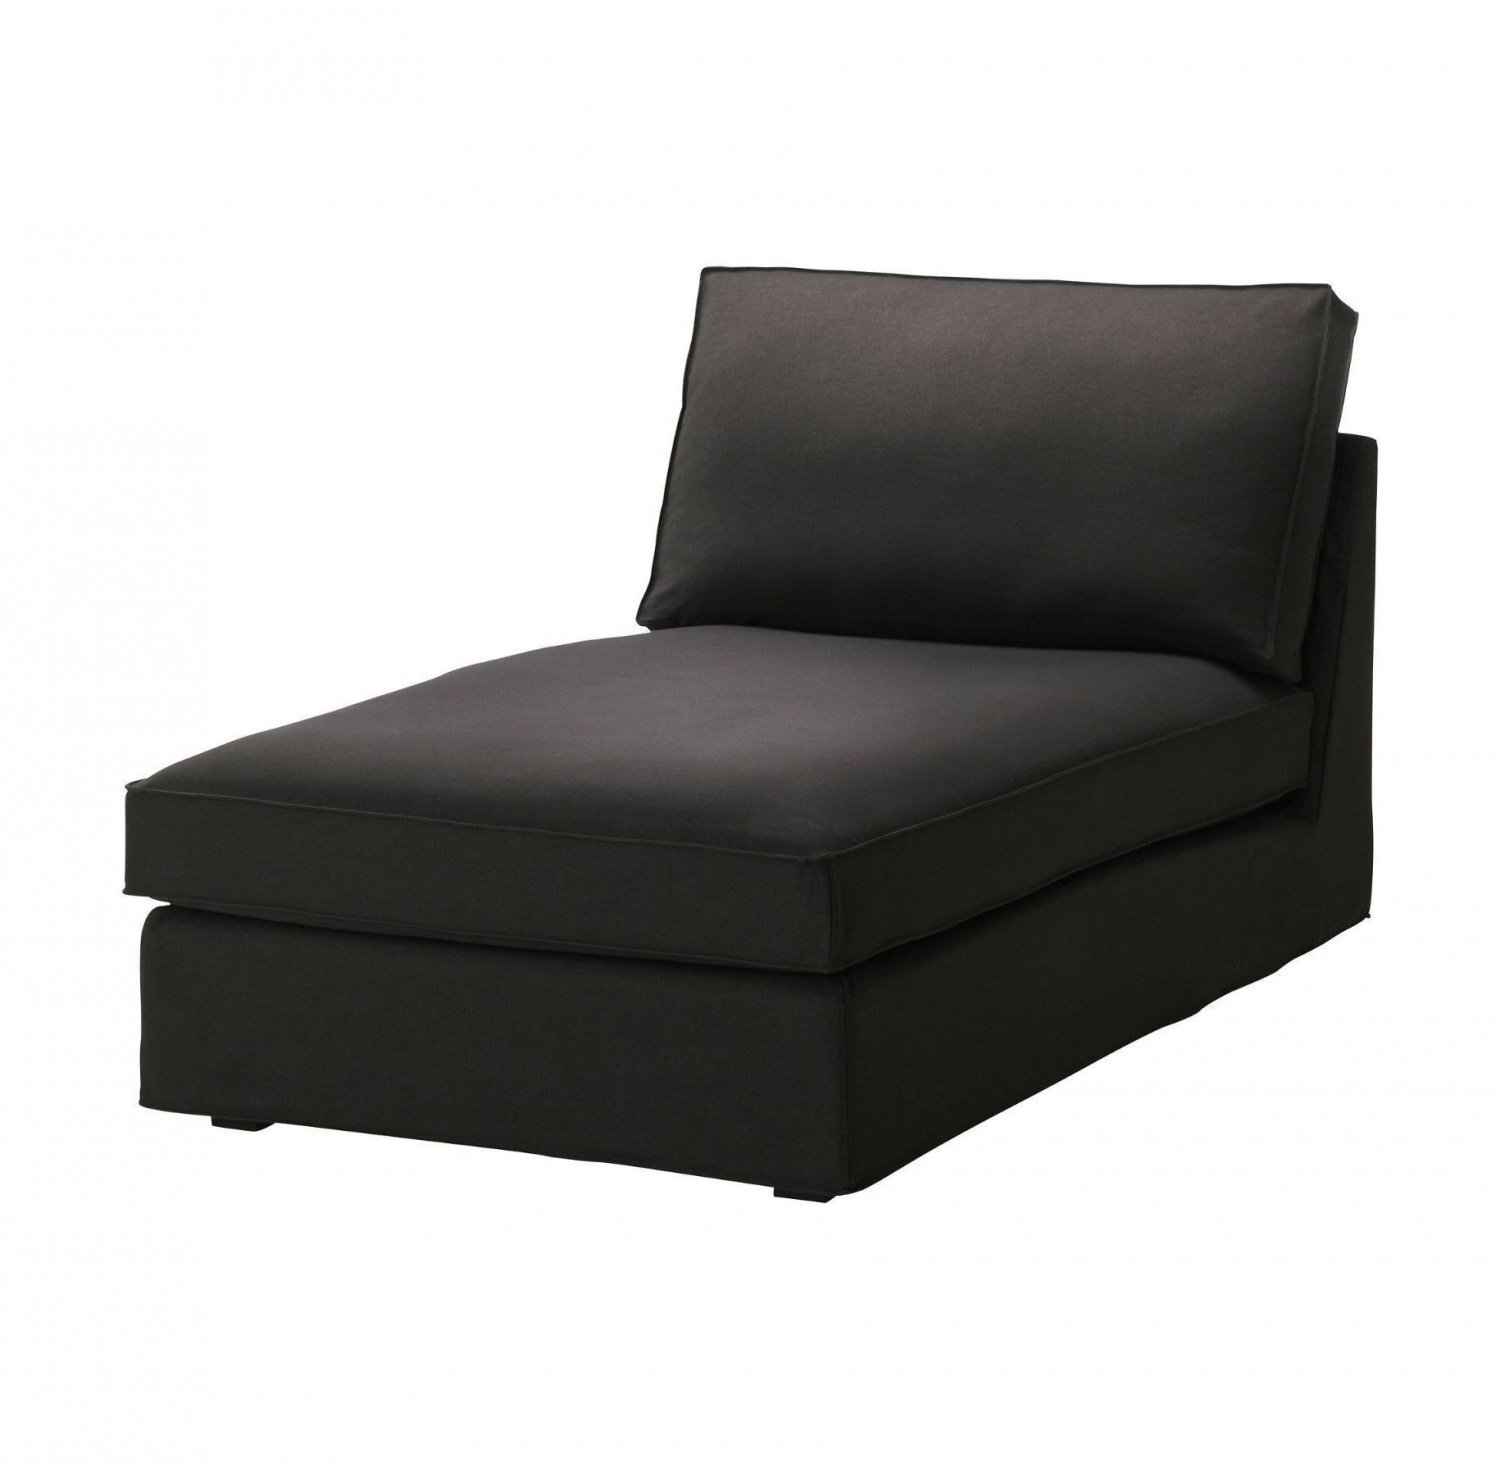 Ikea Act New Ikea Slipcover For Kivik Chaise Lounge 502 439 25